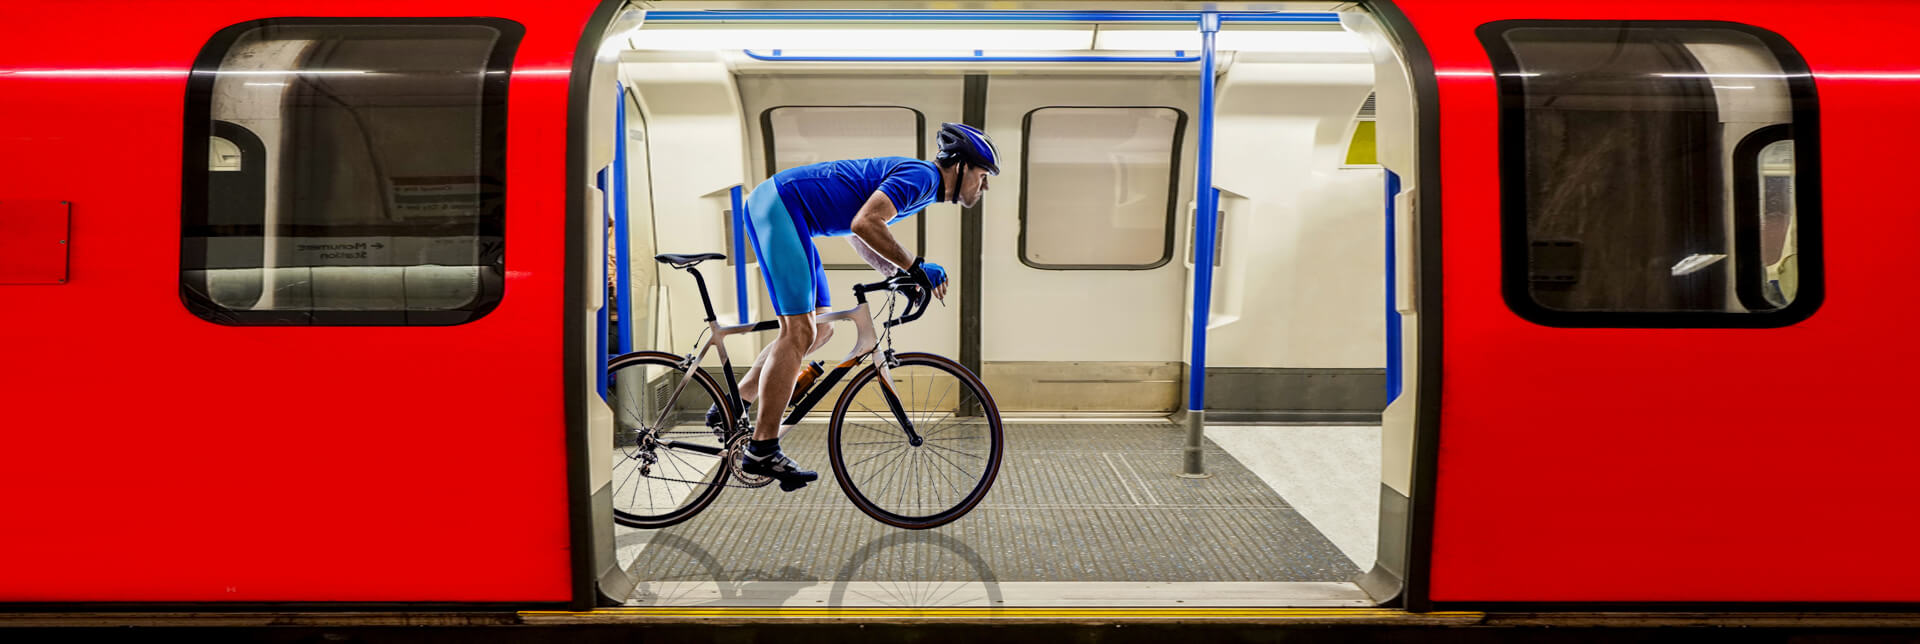 Cycle the London underground. Cyclist on a London Tube Train.